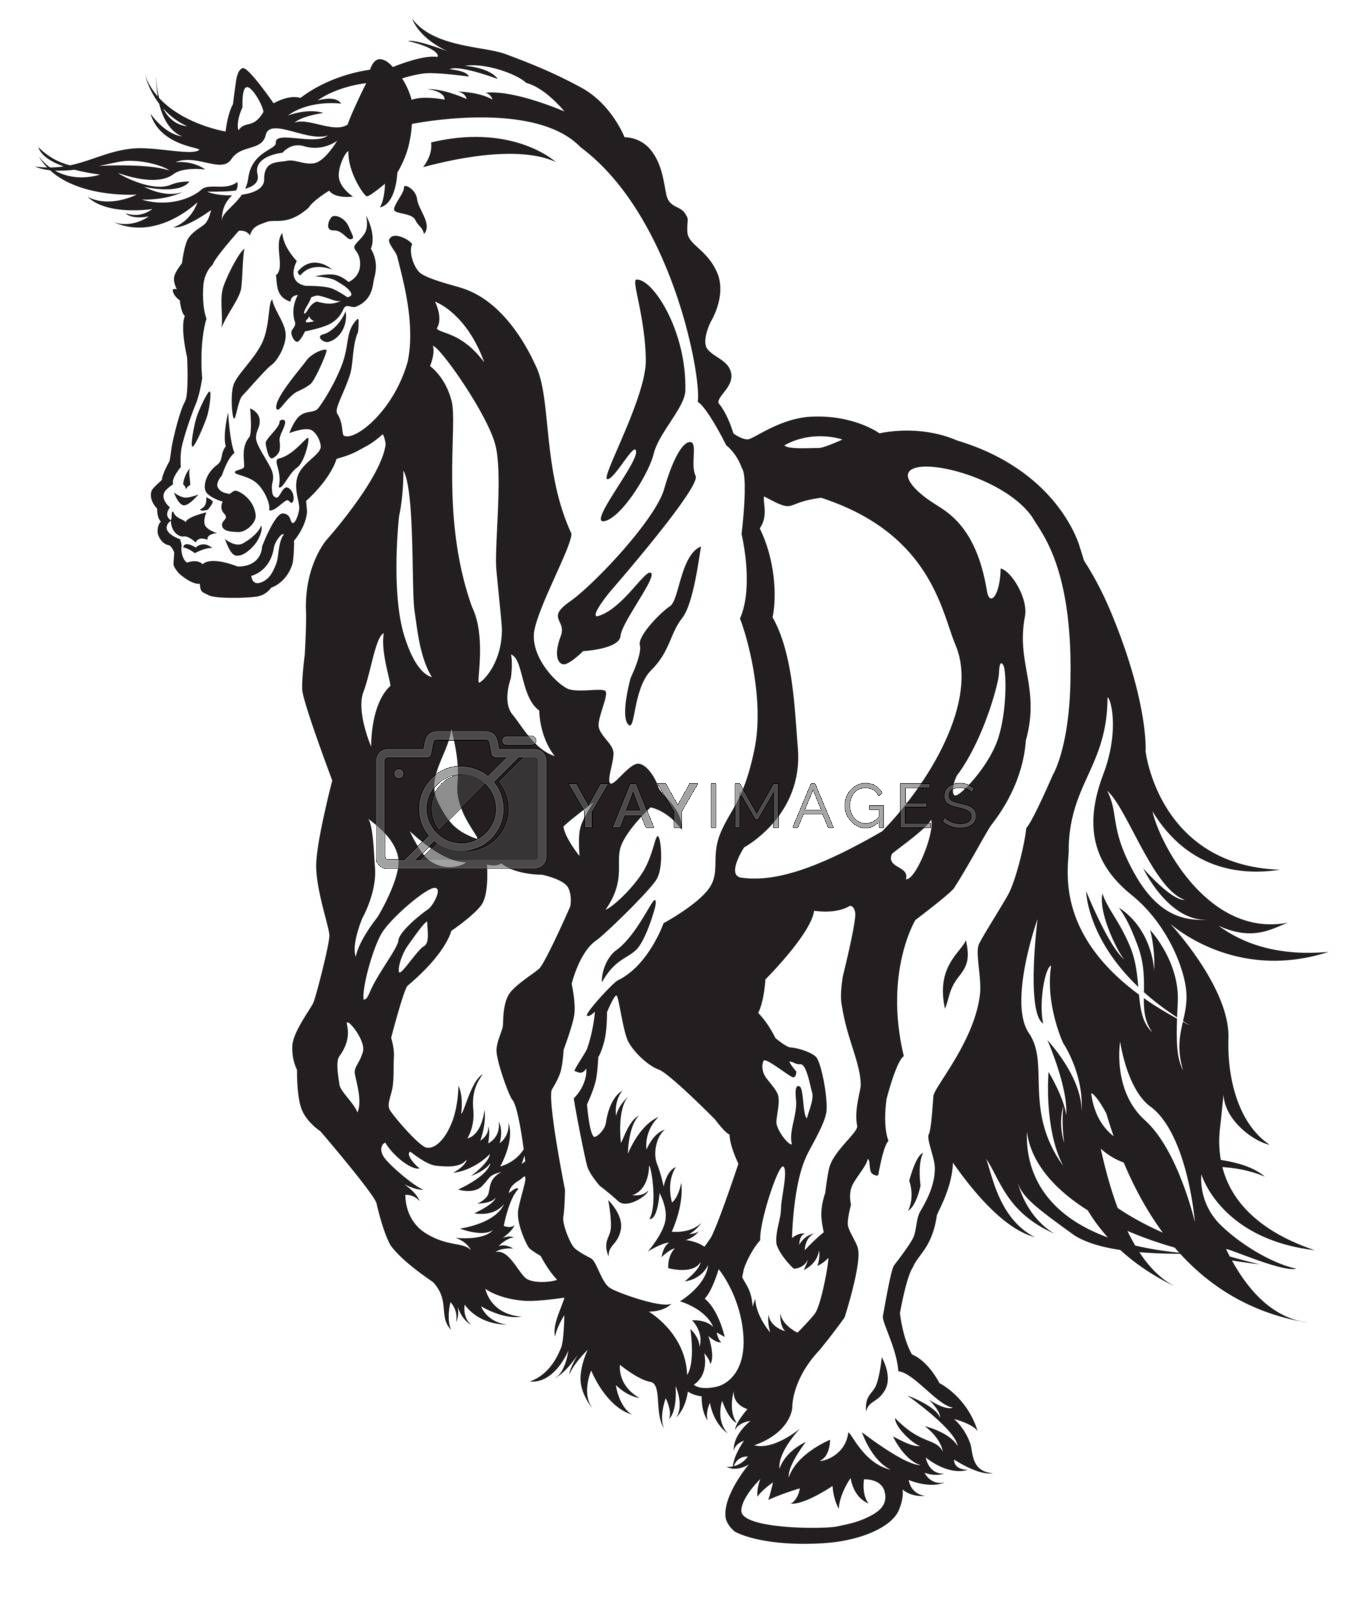 Running Horse Black White Royalty Free Stock Image Stock Photos Royalty Free Images Vectors Footage Yayimages